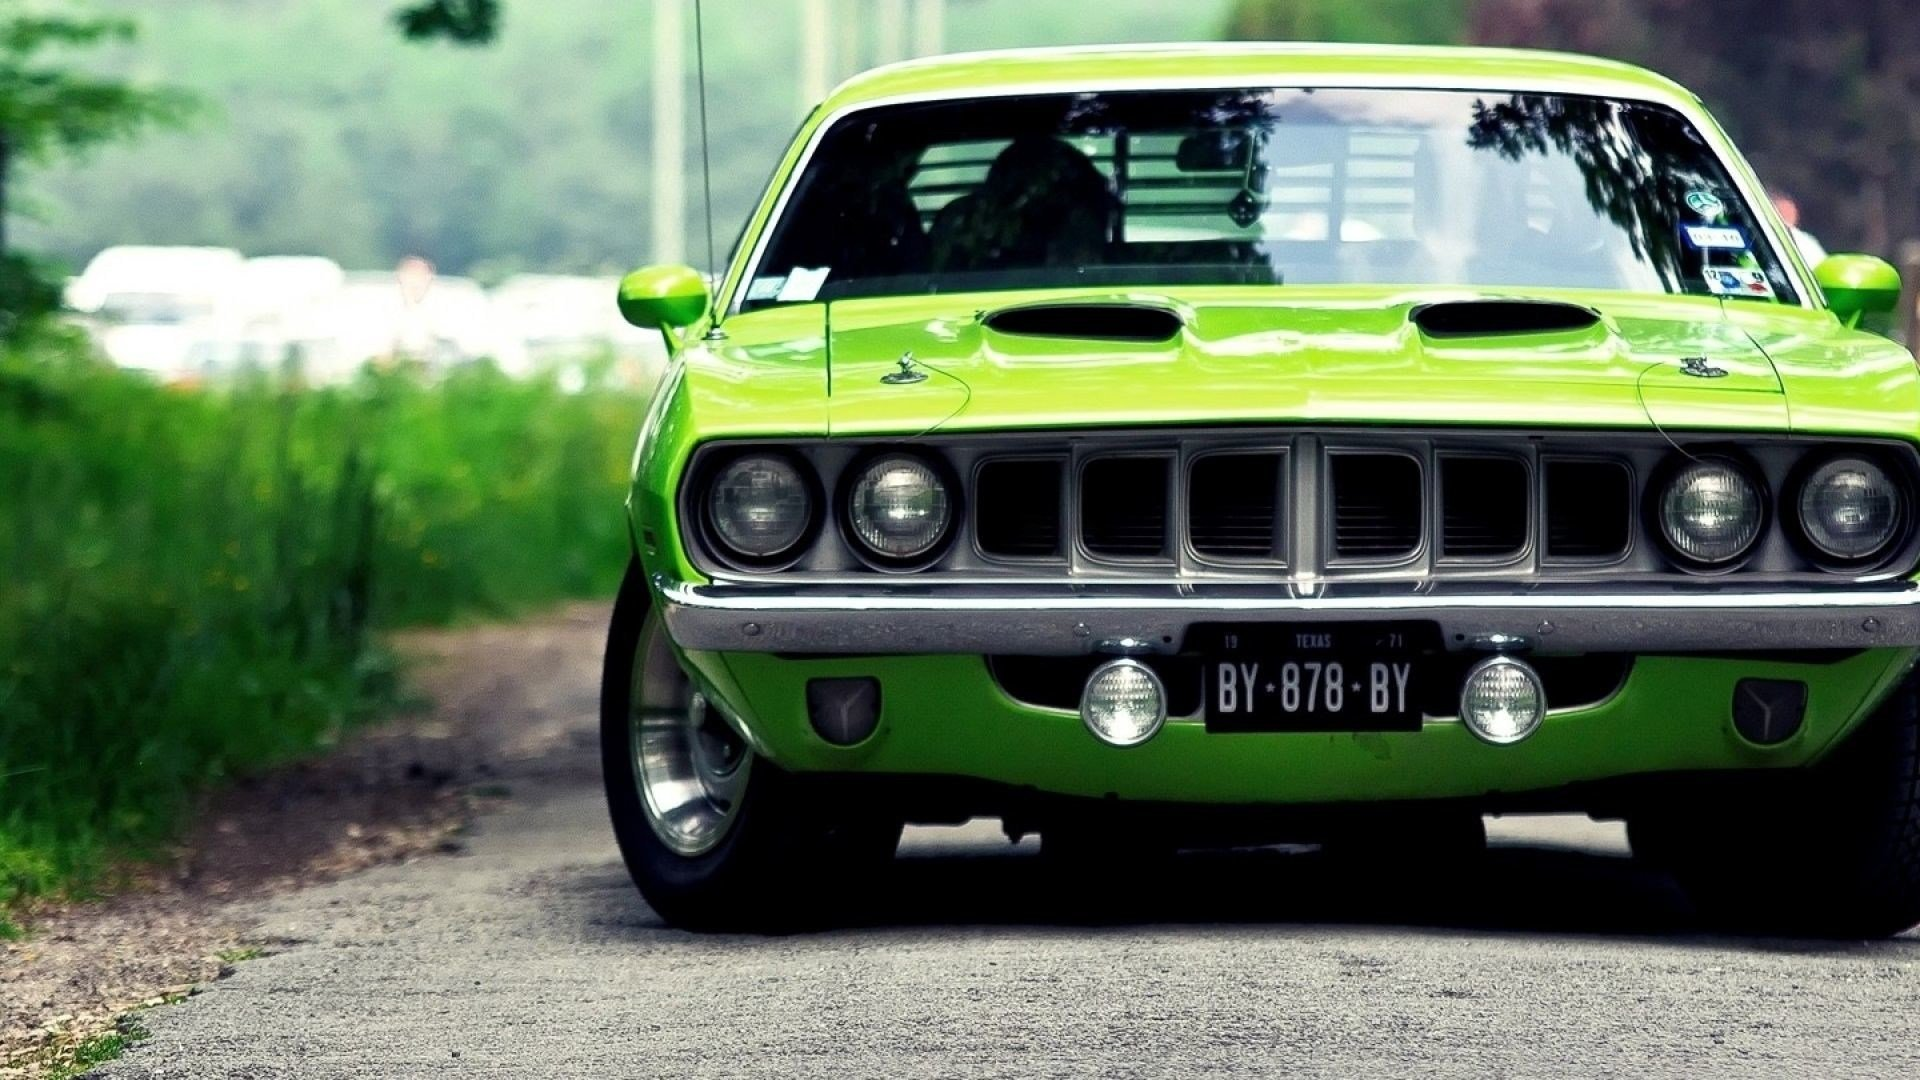 Latest Full Hd Car Wallpapers 1920X1080 63 Images Free Download